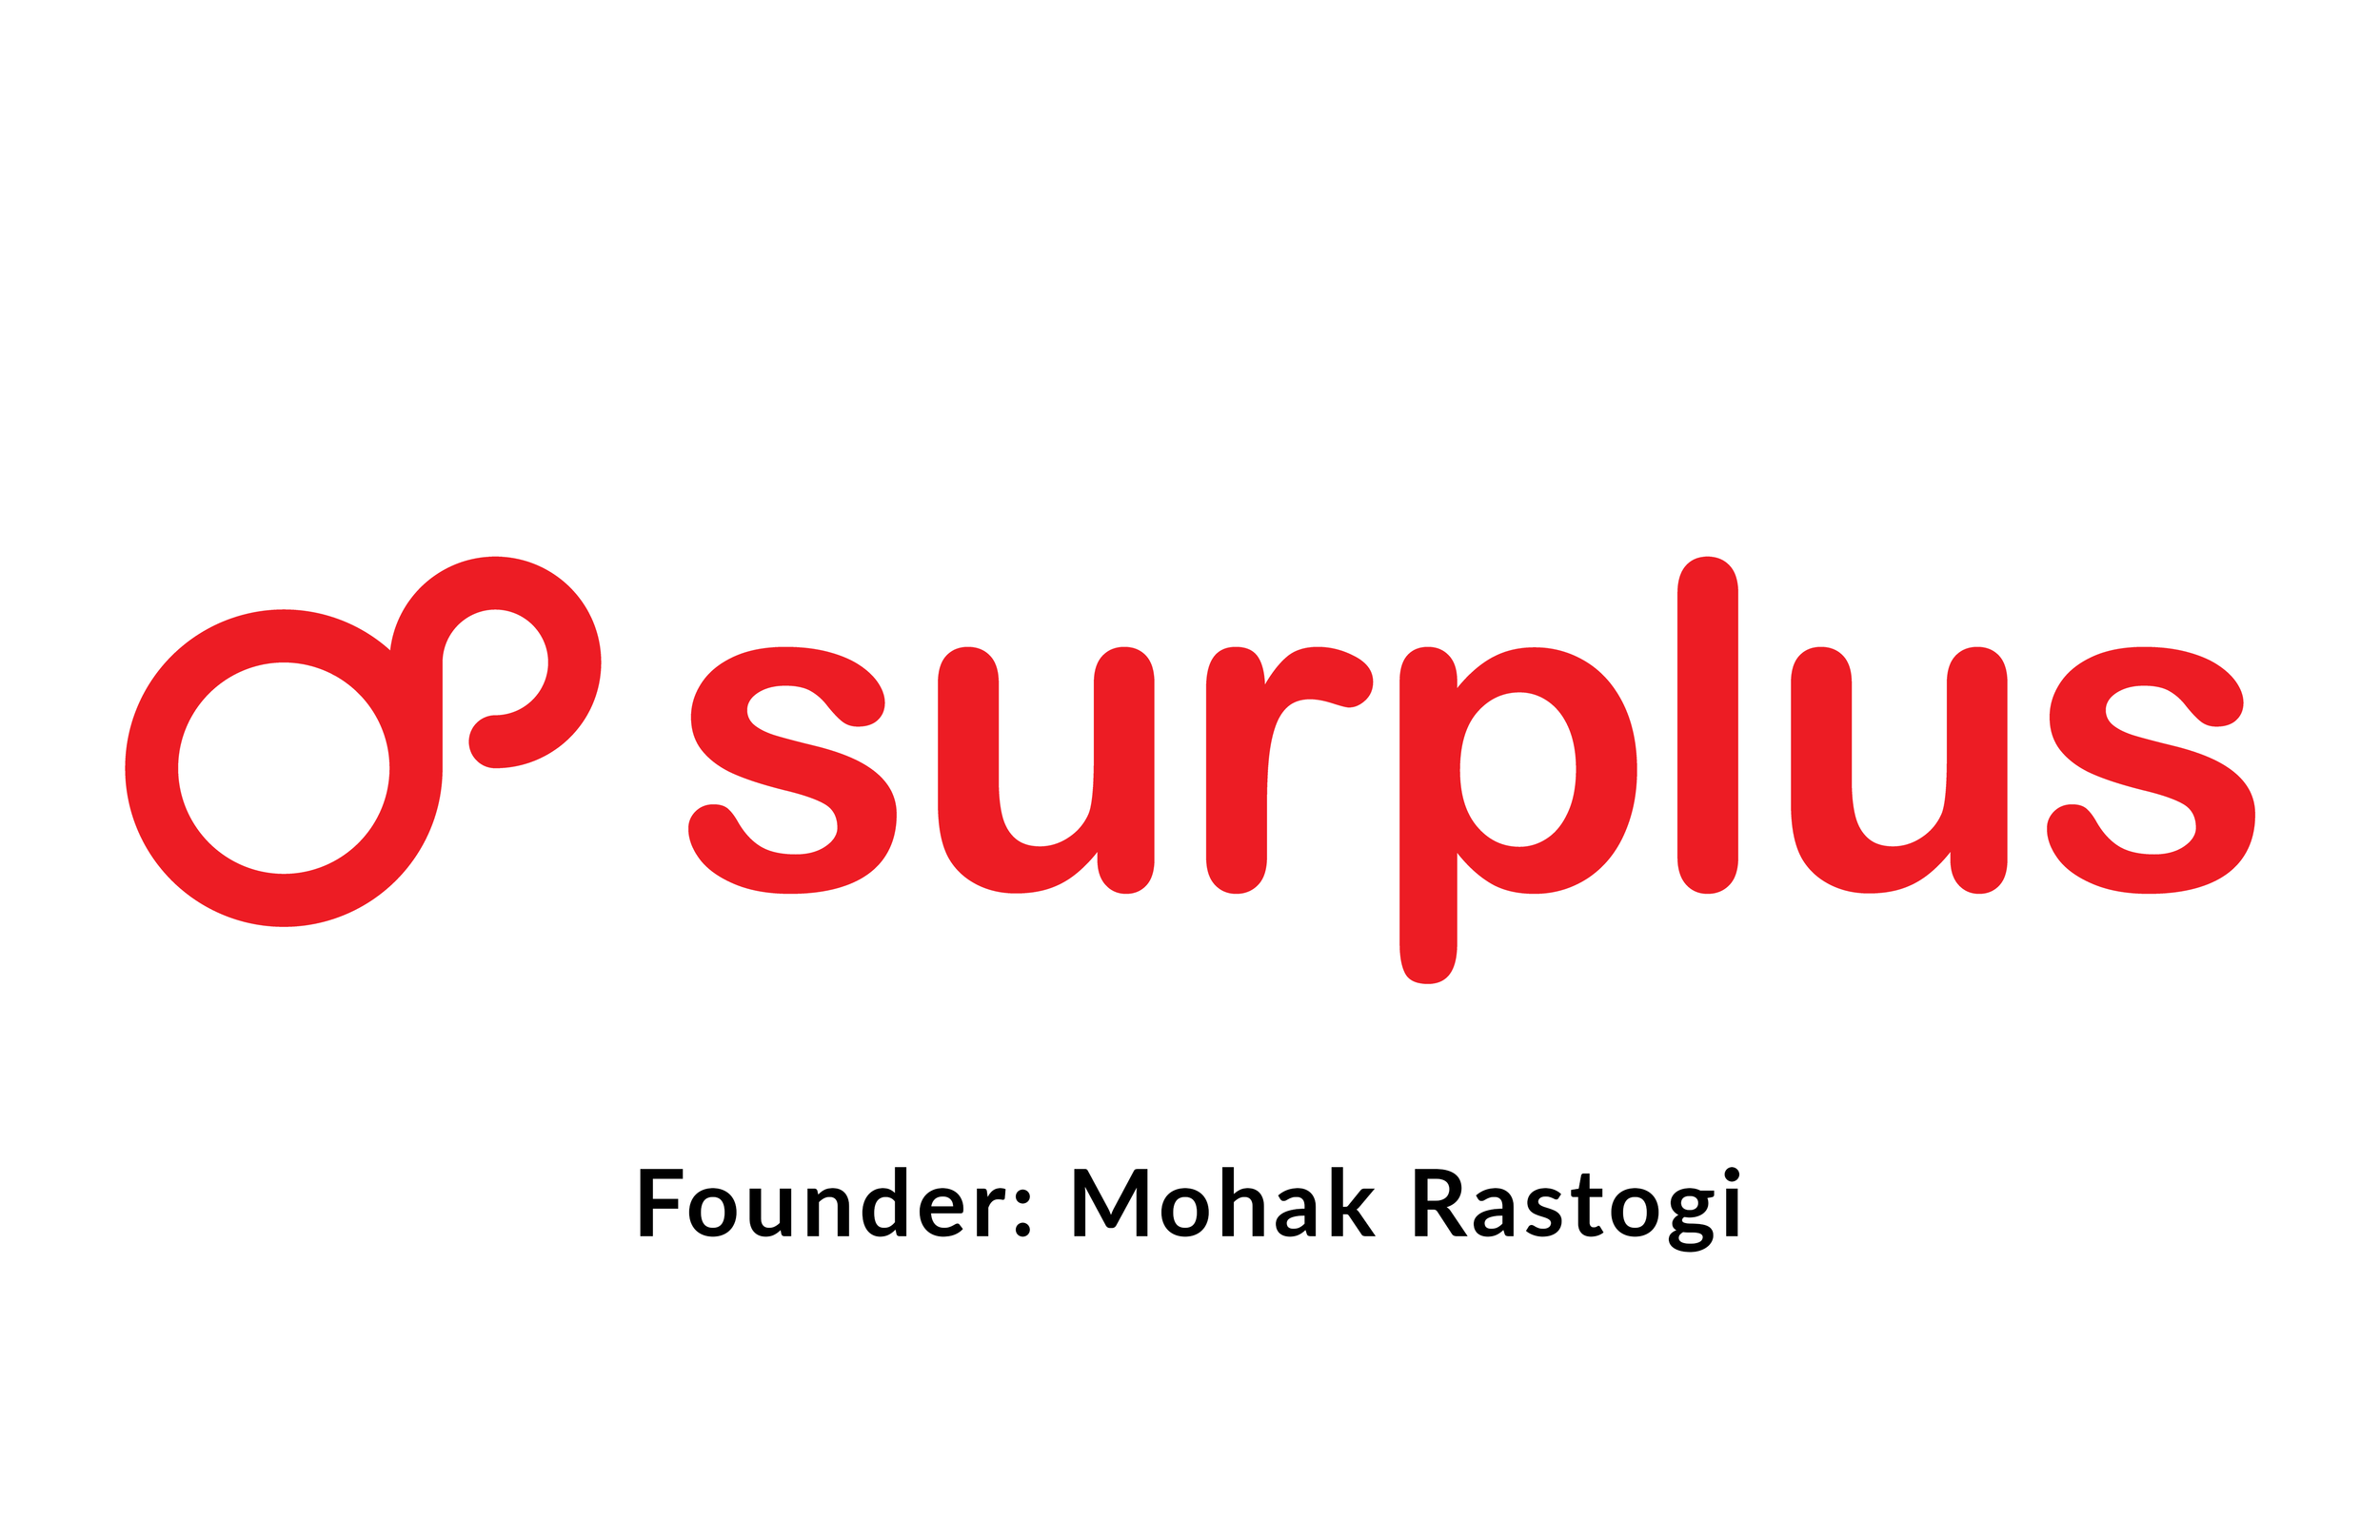 Surplus - Surplus focuses on reducing Food Waste and alleviating Food Insecurity by connecting surplus foods from restaurants to local consumers at a heavily discounted price. Our mission is to put more money in the pockets of local businesses while feeding the community.